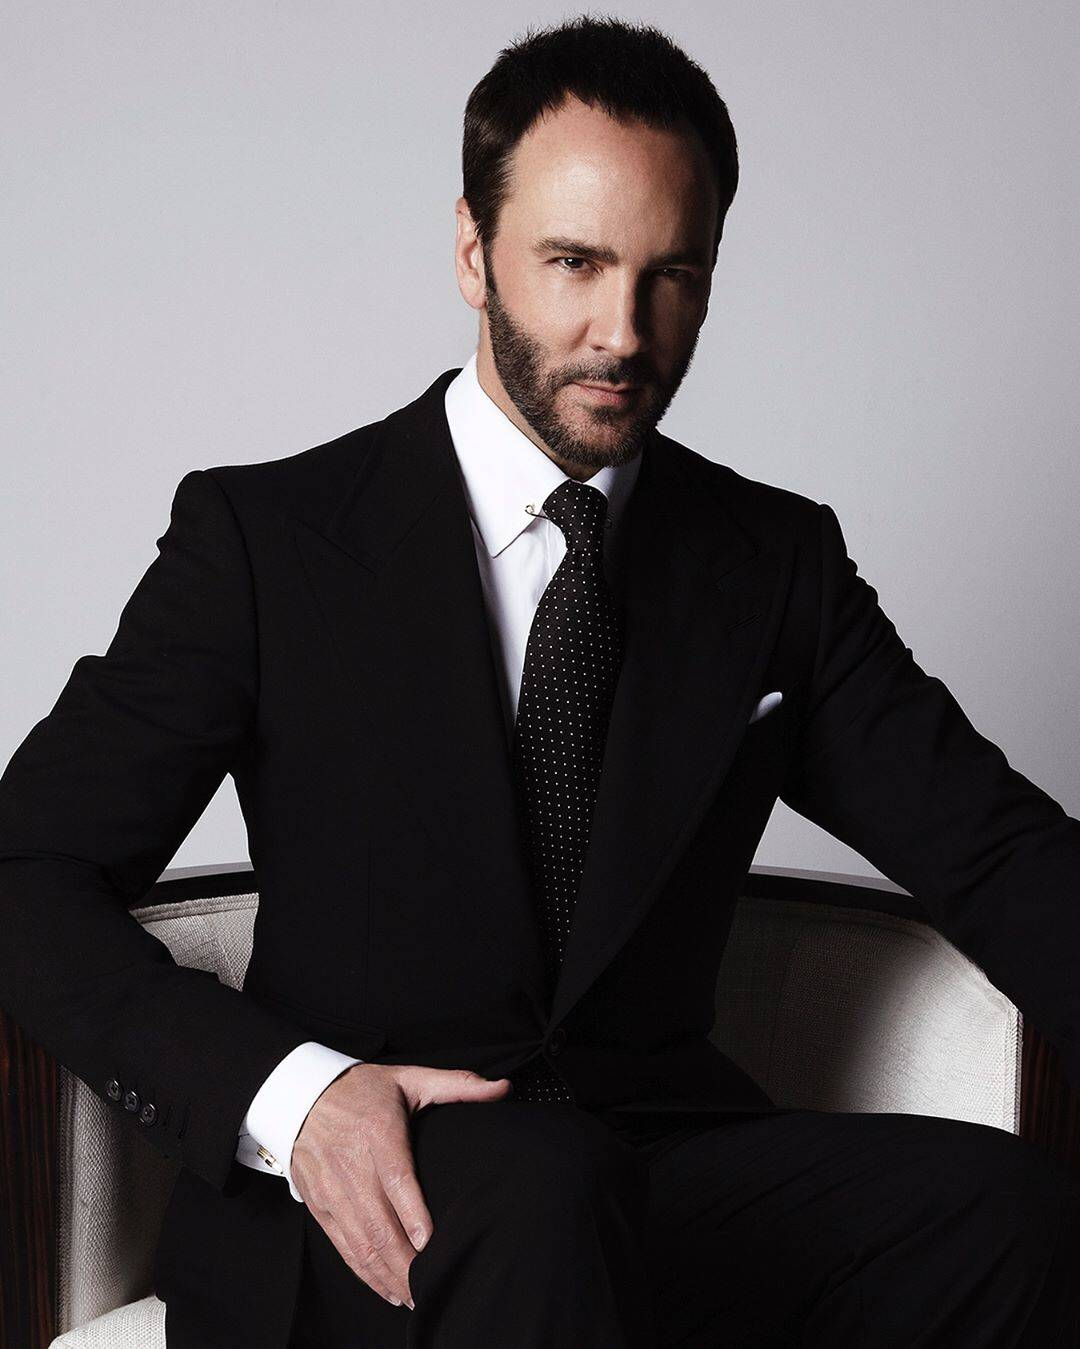 Thomas Carlyle Ford, the man behind Tom Ford's success and Gucci in early 2000s